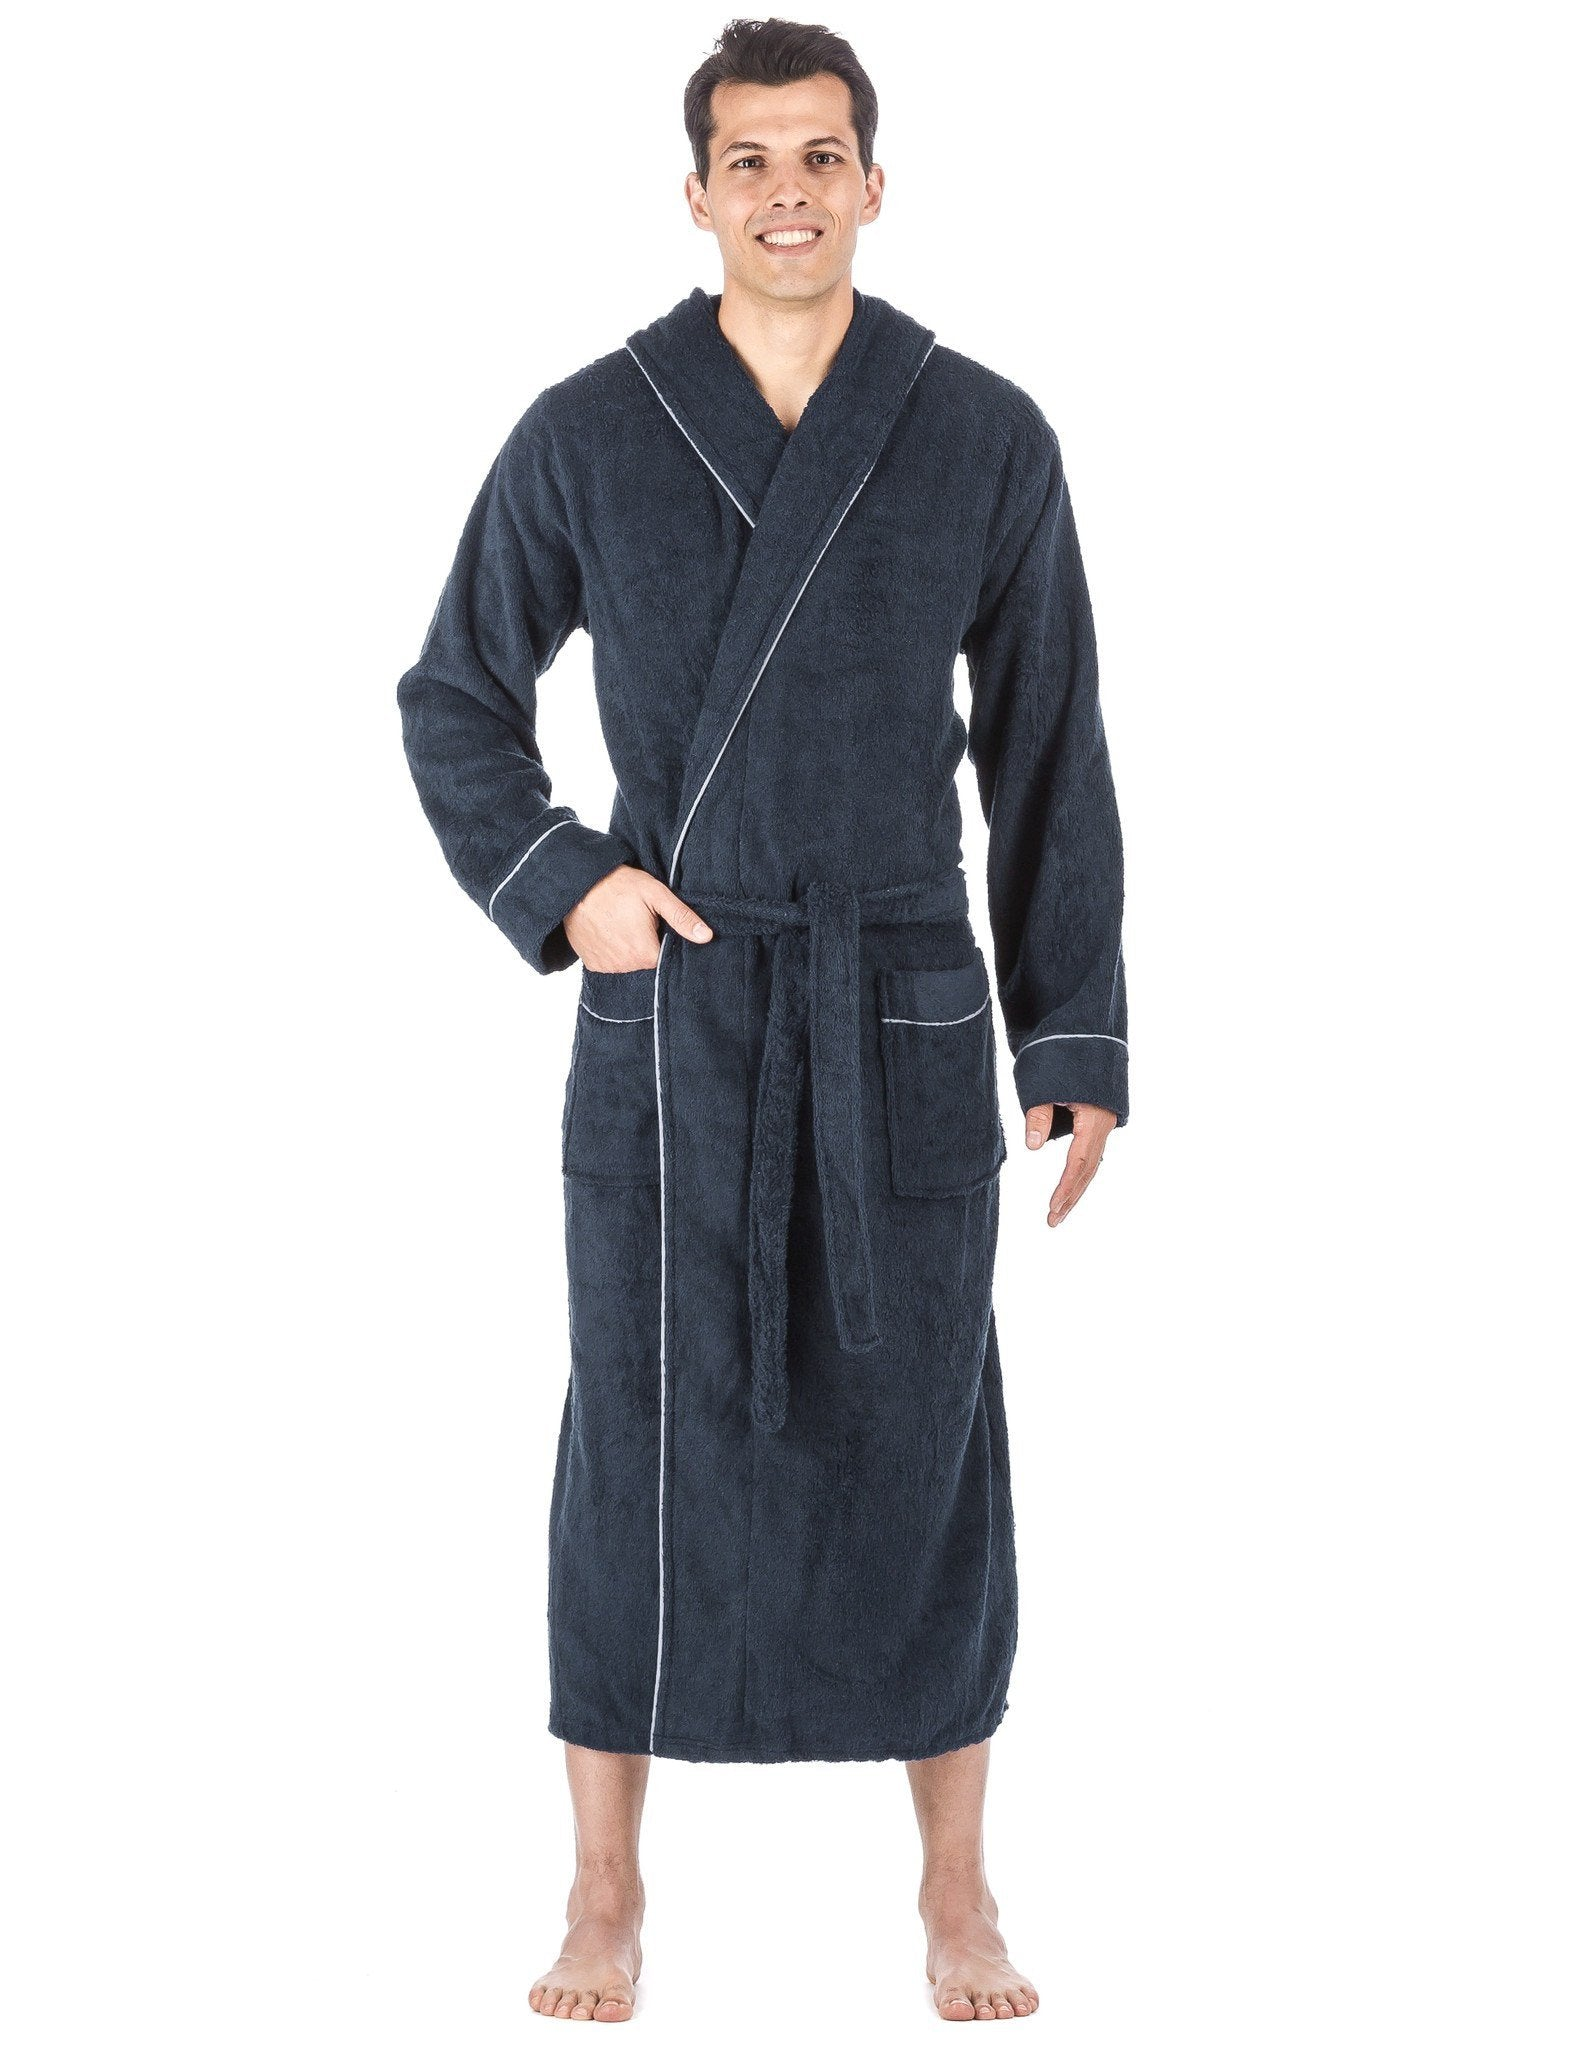 Men's 100% Cotton Terry Long Hooded Bathrobe - Dark Blue